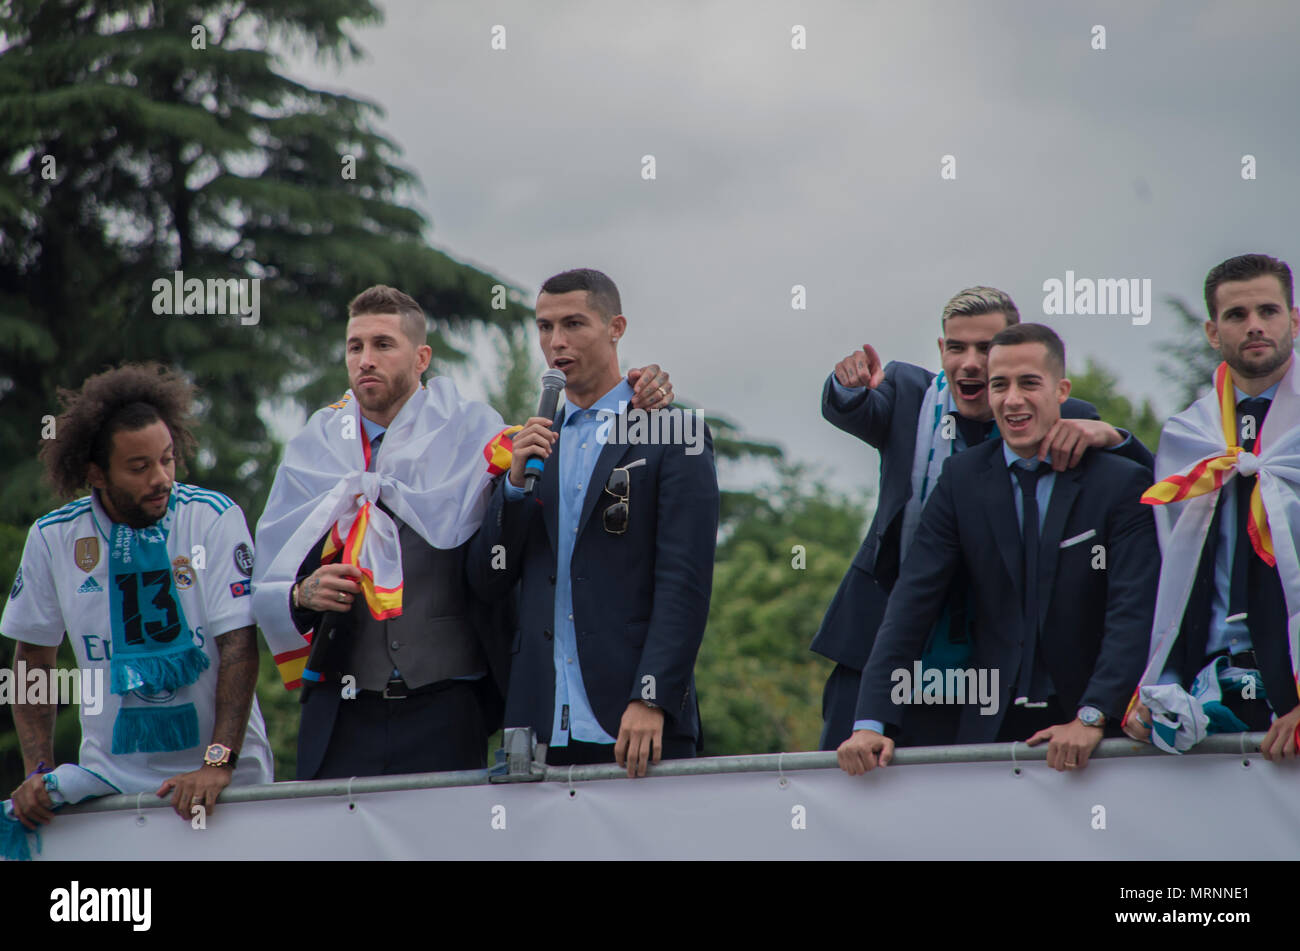 Cibeles, Spain. 27th May 2018. The Real Madrid players celebrated their 13th European Cup at Champions League with their traditional itinerary from Santiago Bernarbeu stadium to La Cibeles square where they exhibited the cup and celebrated their victory together with thousands of fans. Credit: Lora Grigorova/Alamy Live News Stock Photo